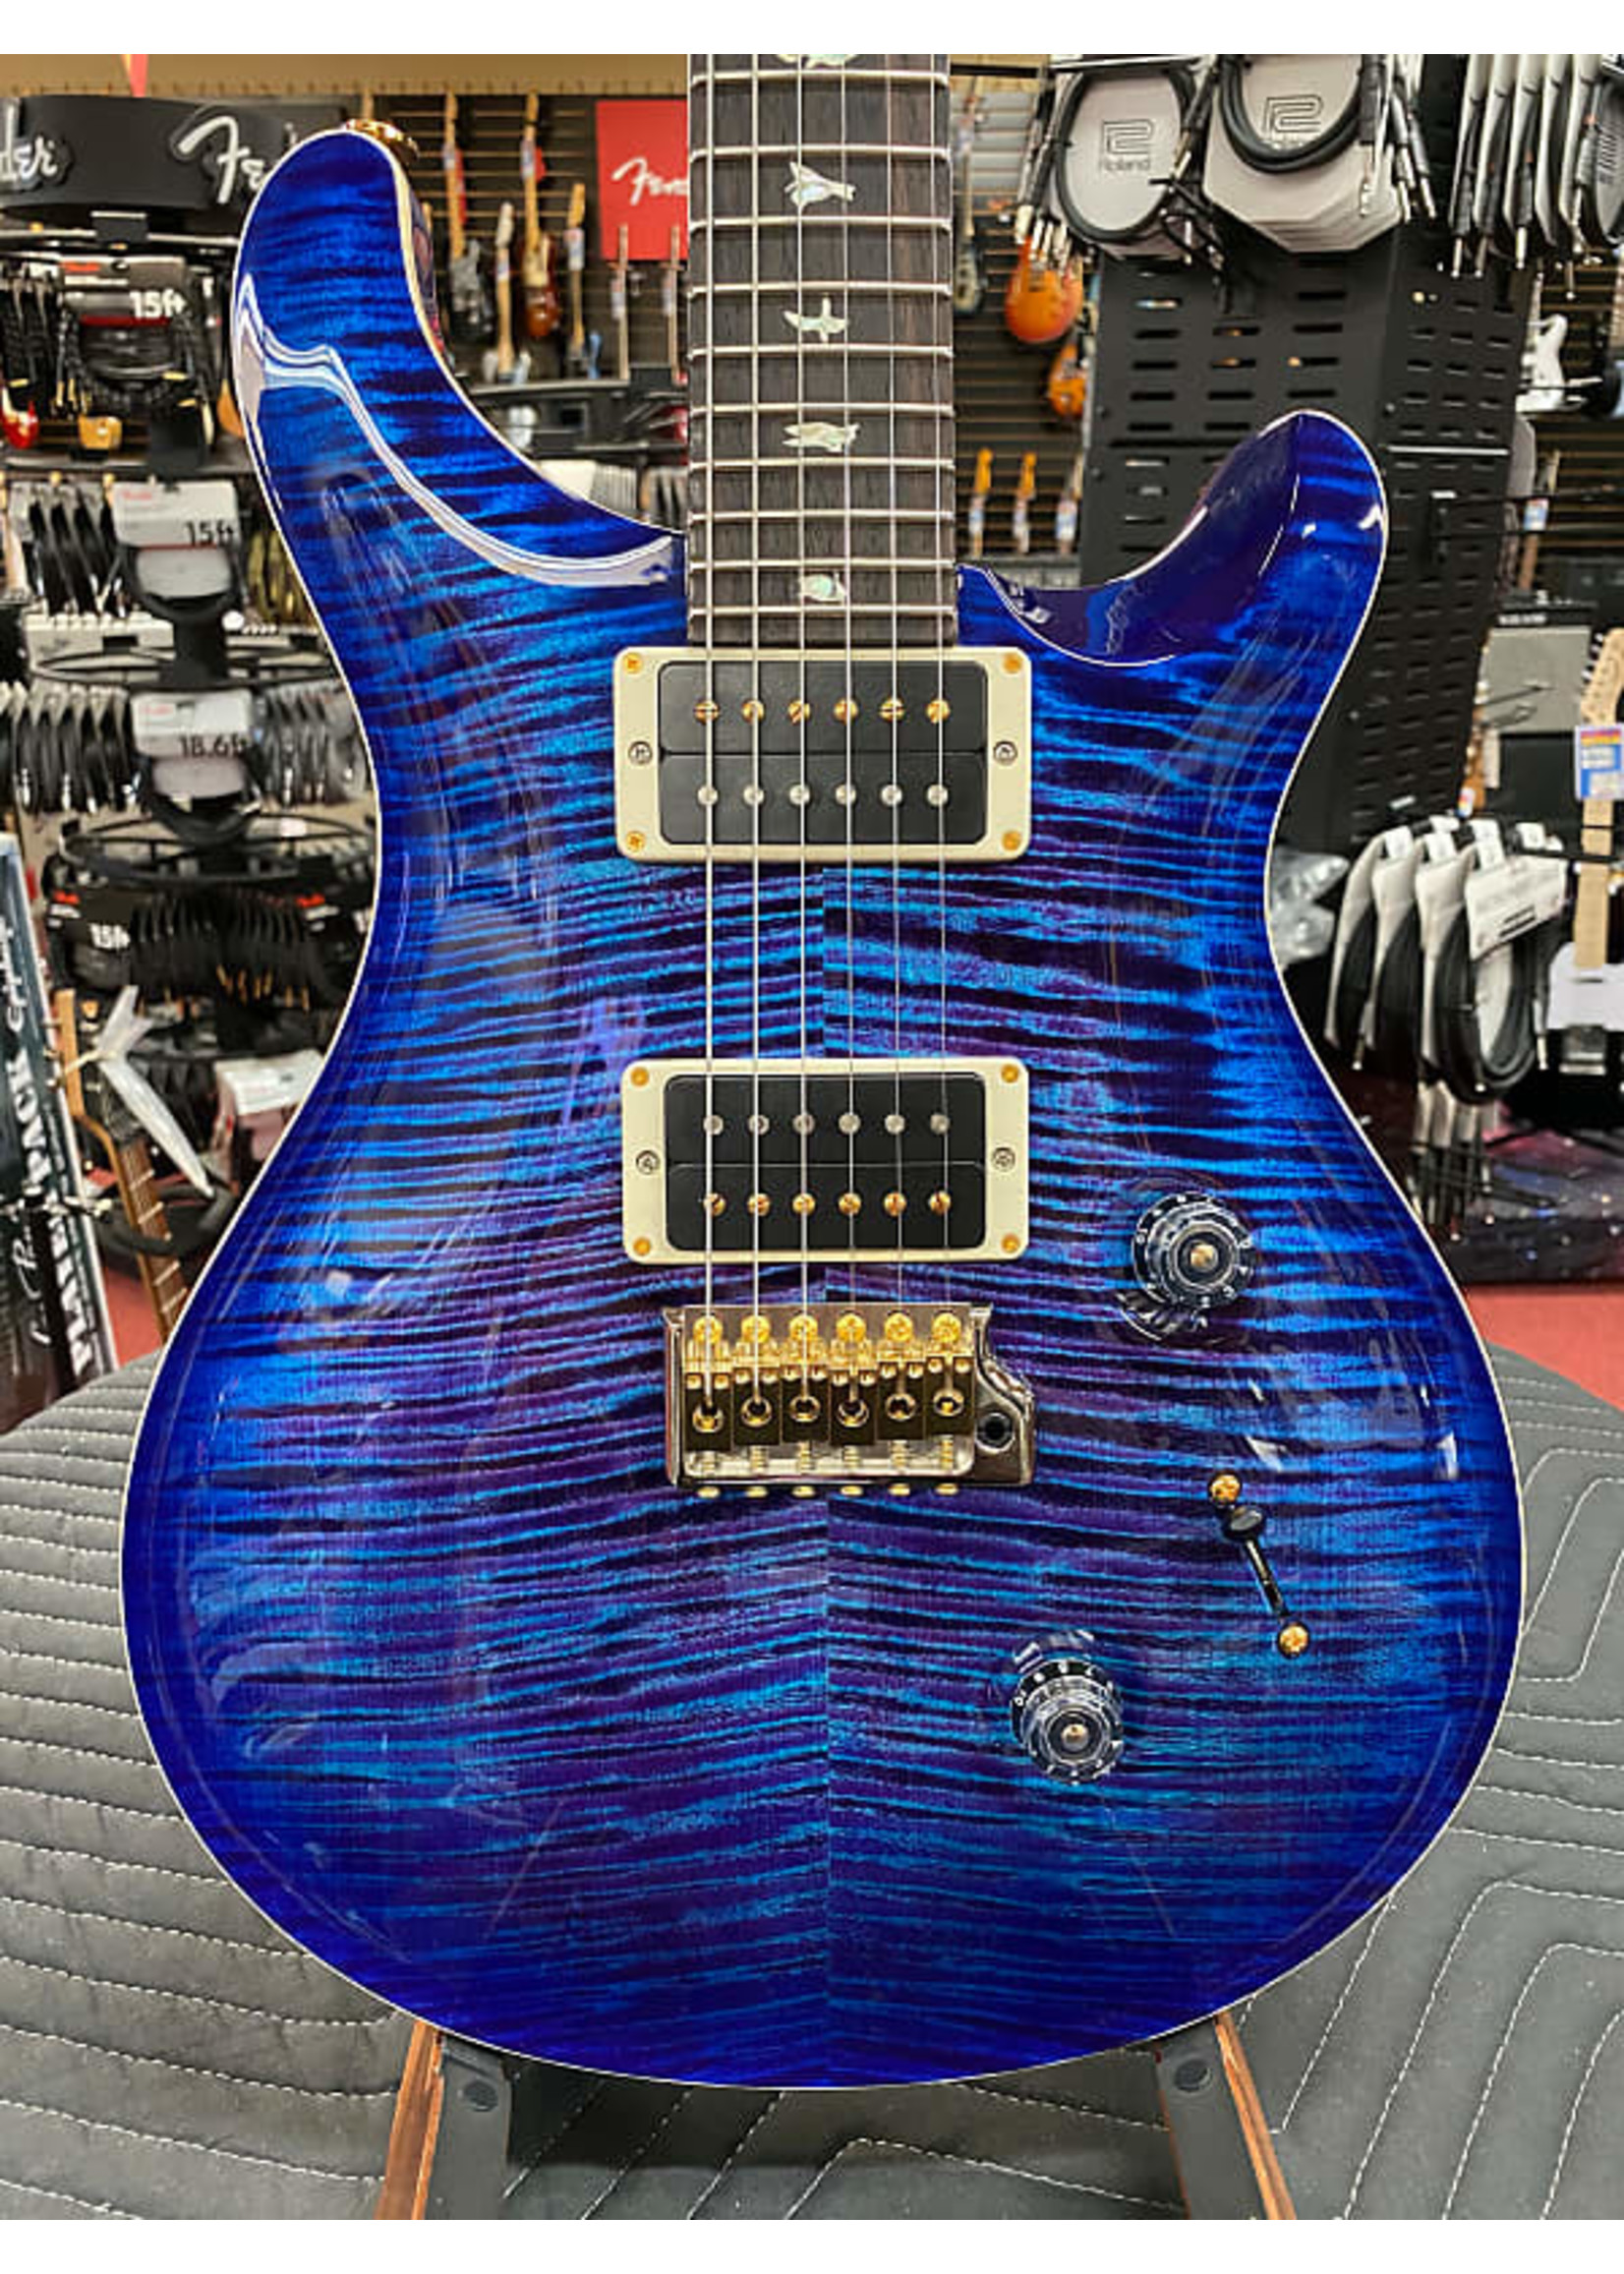 Paul Reed Smith PRS Custom 24 Electric Guitar with Pattern Thin Neck - Violet Blue Burst 10 Top